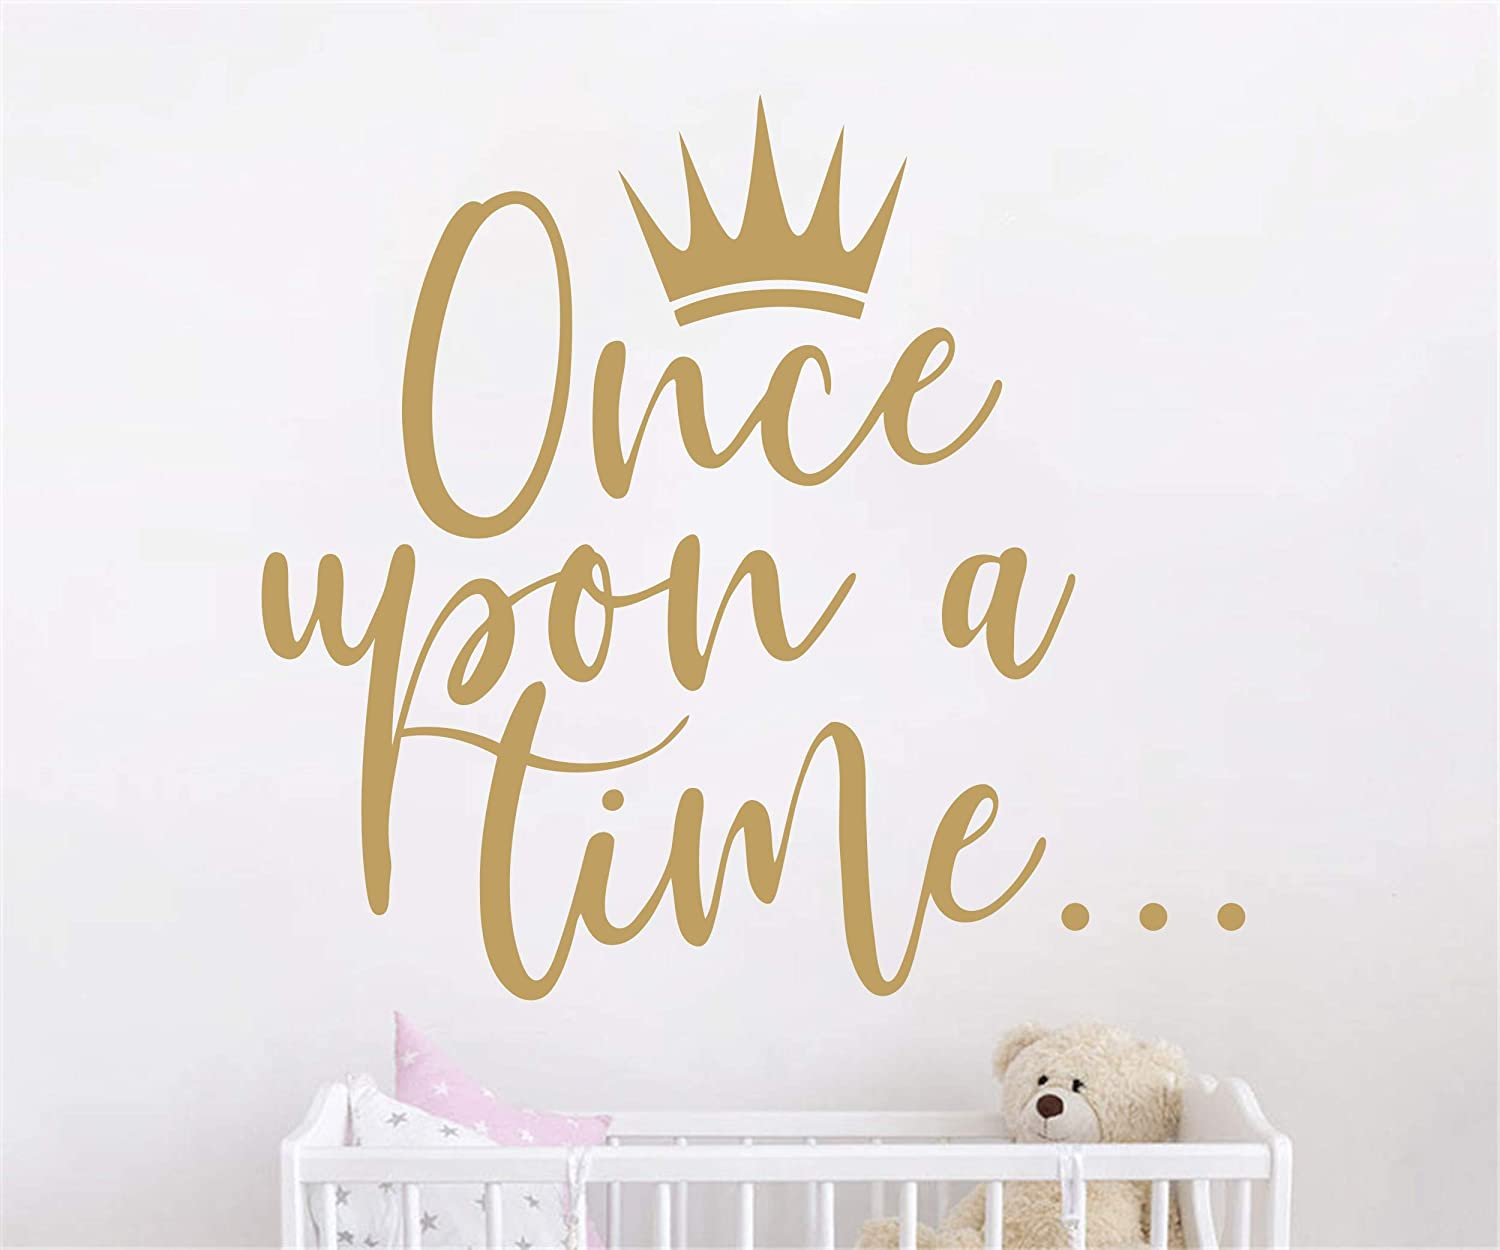 JURUOXIN Once Upon a time with Crown Wall Sticker Art Vinyl Home Quote Decals for Kids Girl Princess Room Nursery Decoration House Interior Design YMX38 White, 57x52CM